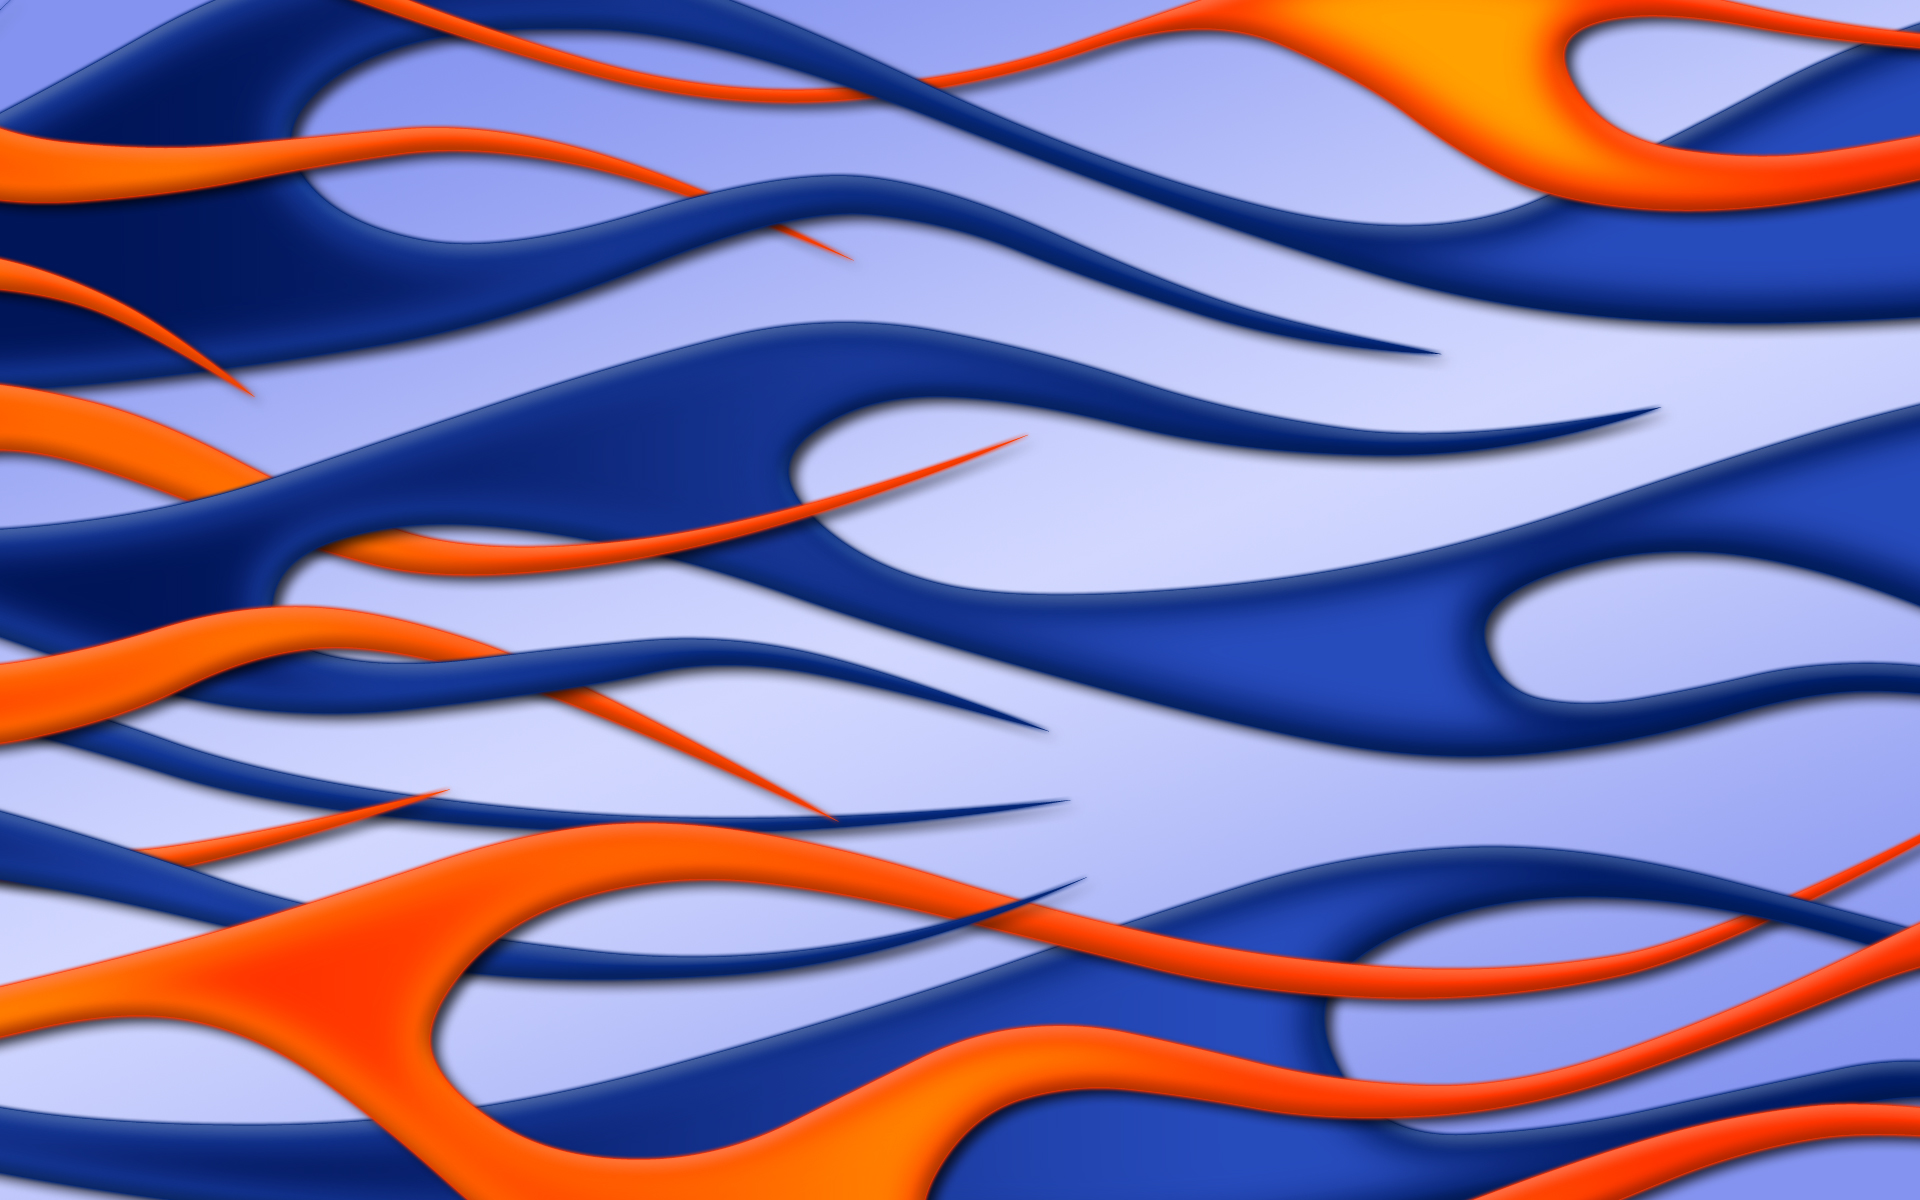 flames blue wallpaper image jbensch orange widescreen 1920x1200